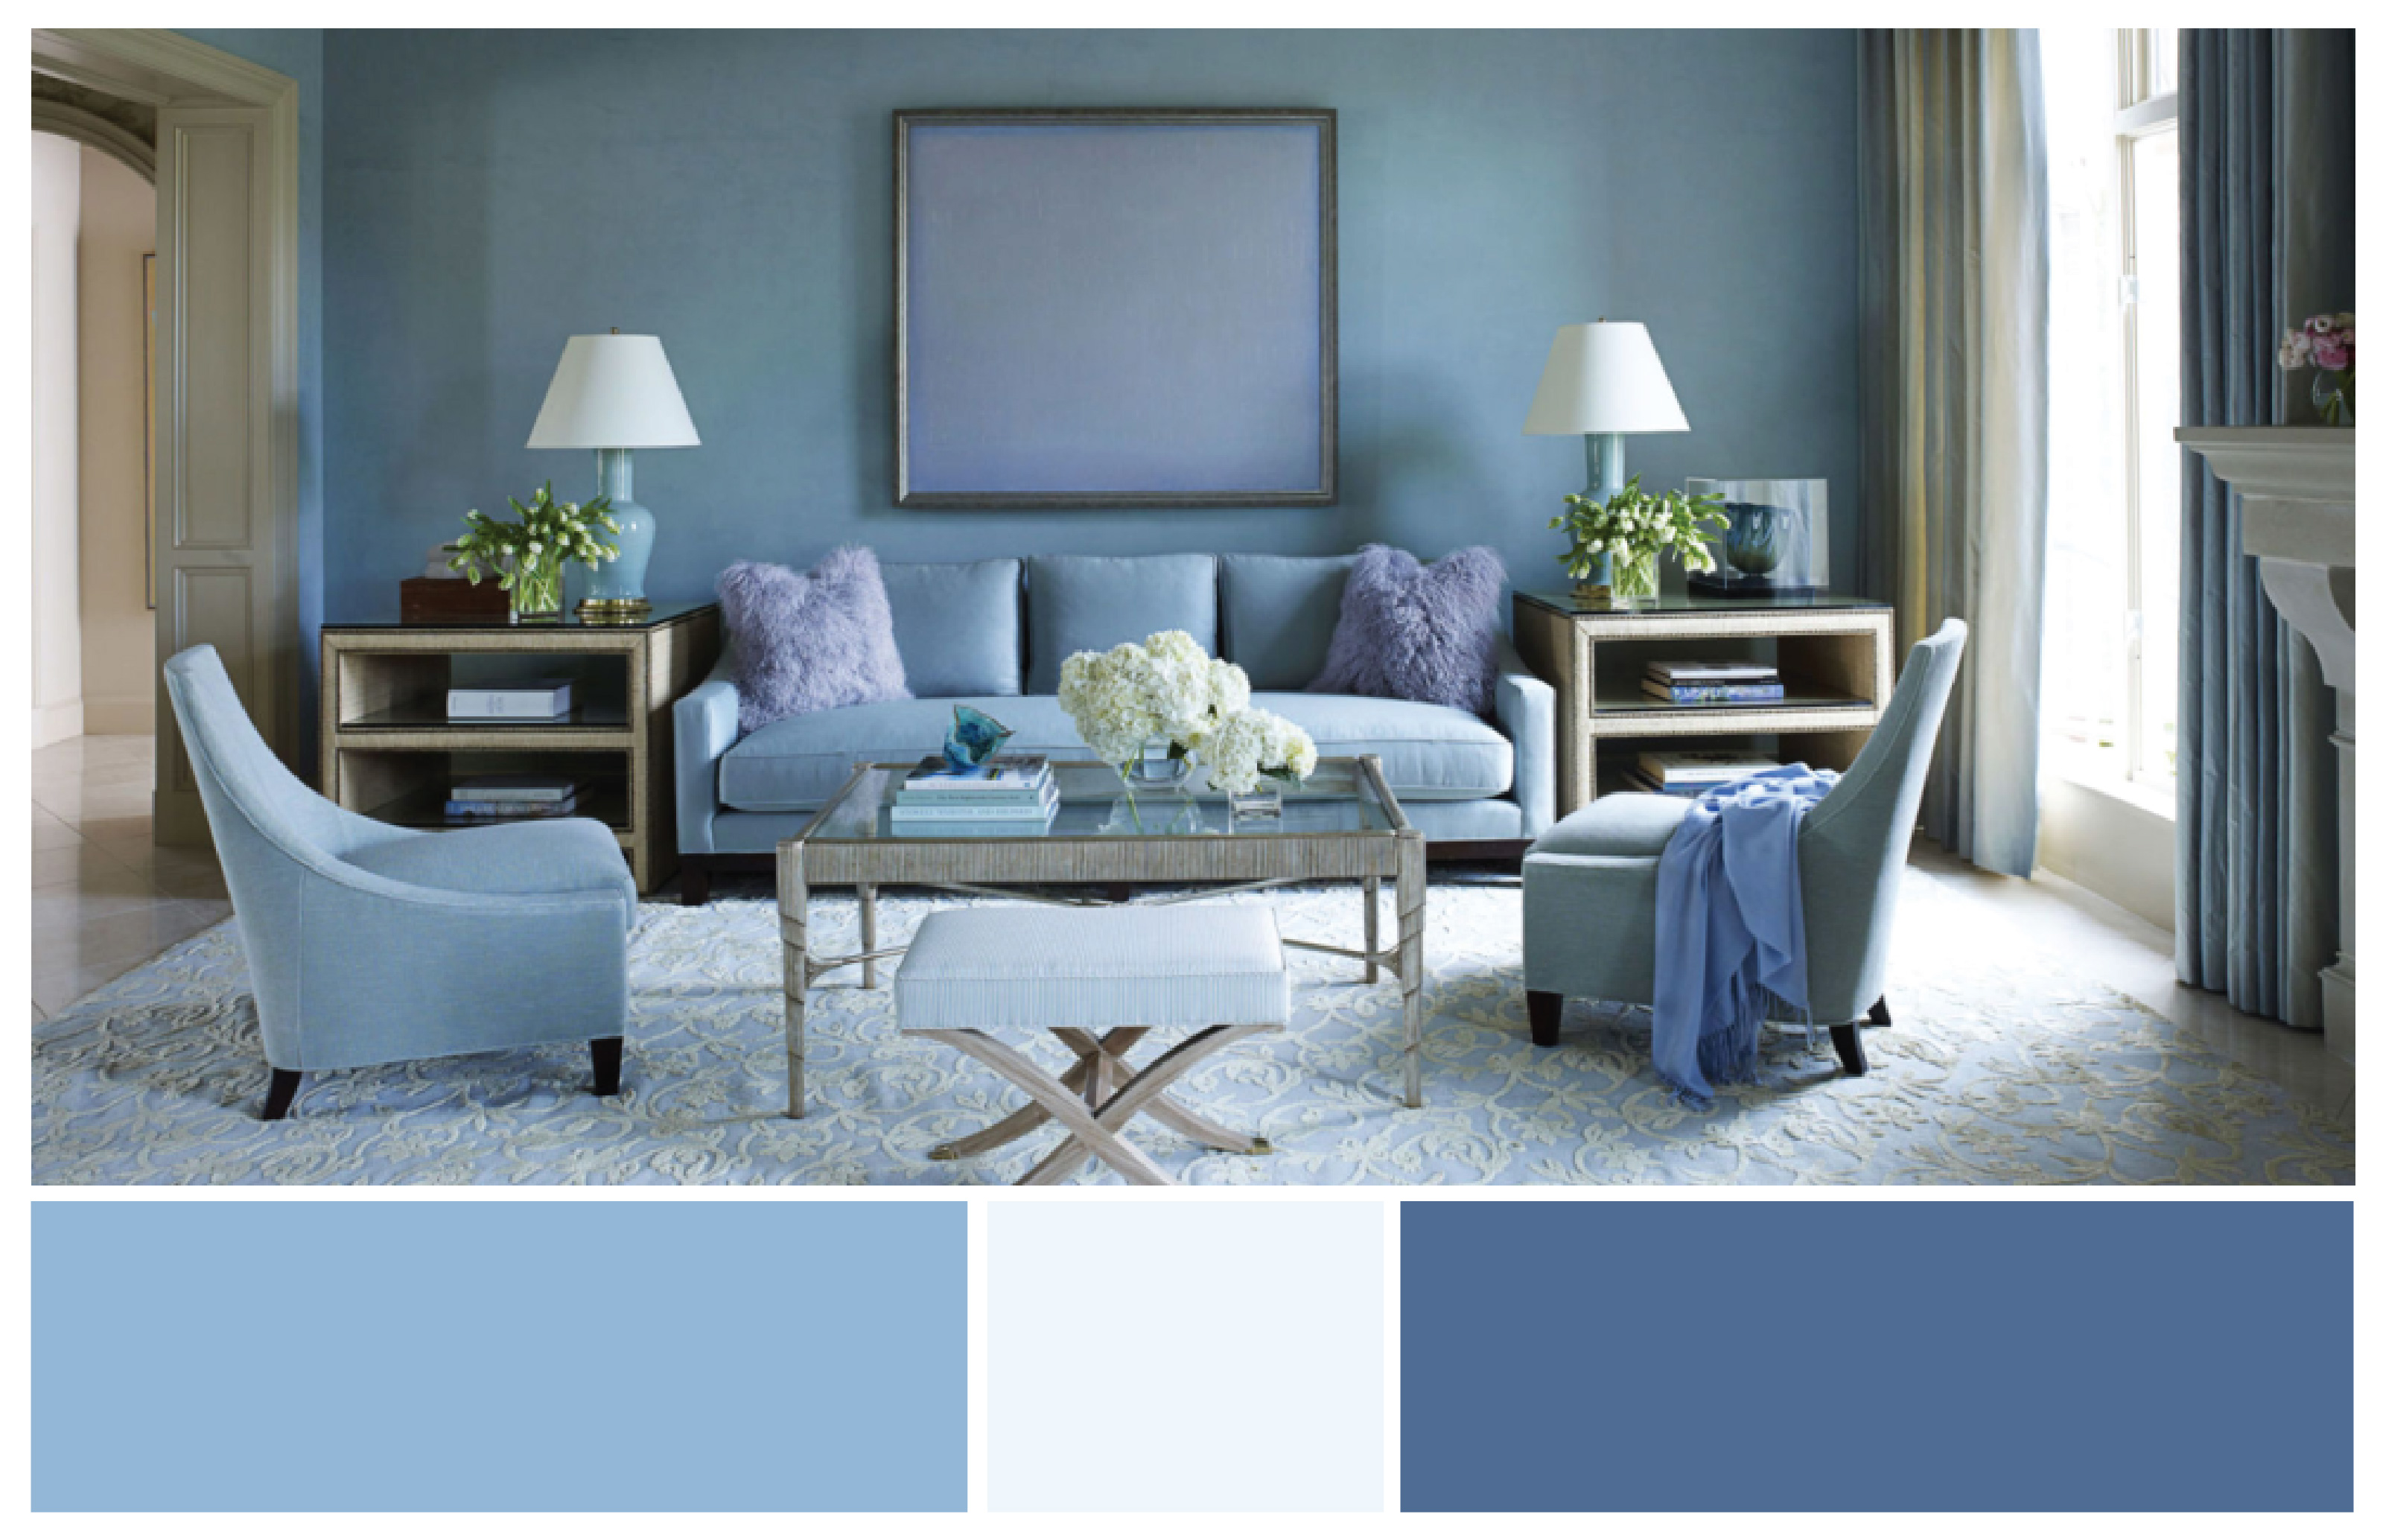 2016 Paint Trends Current Paint Trends Fall Color Report Scuffy Blog By Scuffmaster